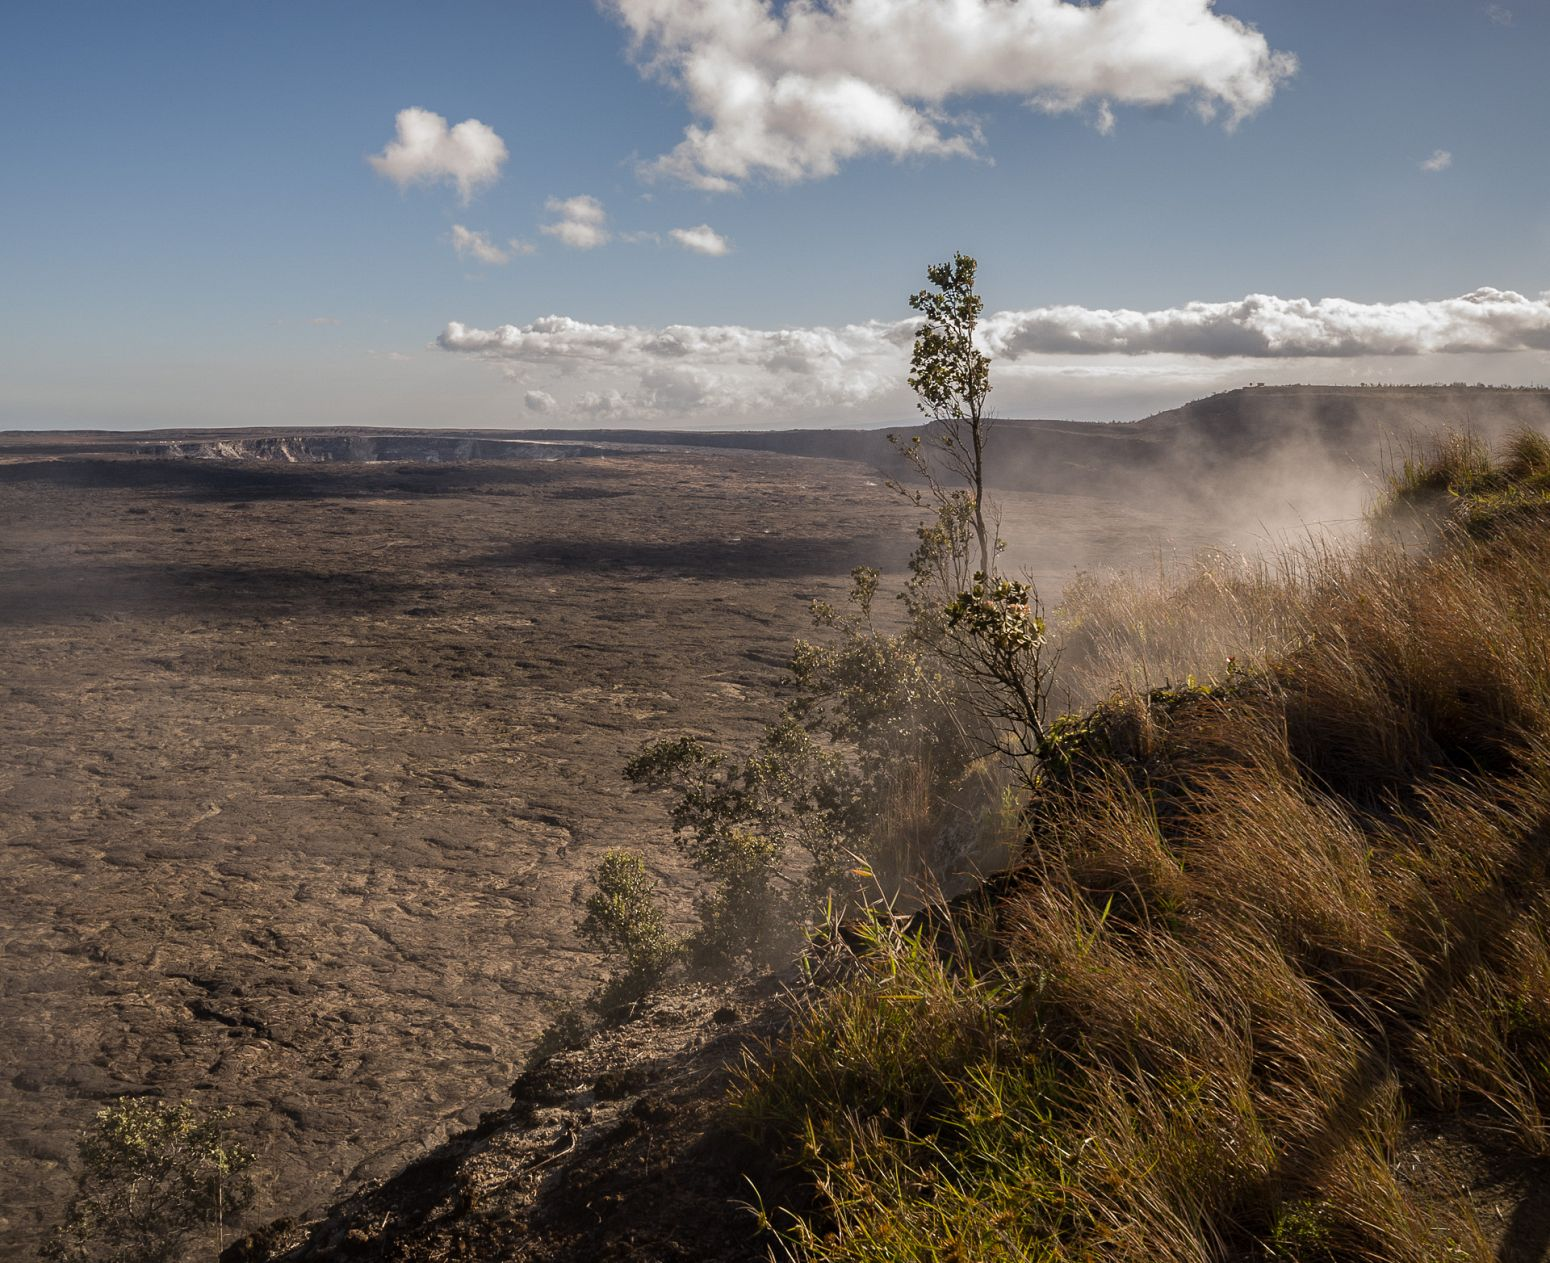 Kilauea Crater, Volcanoes NP, Hawaii, USA